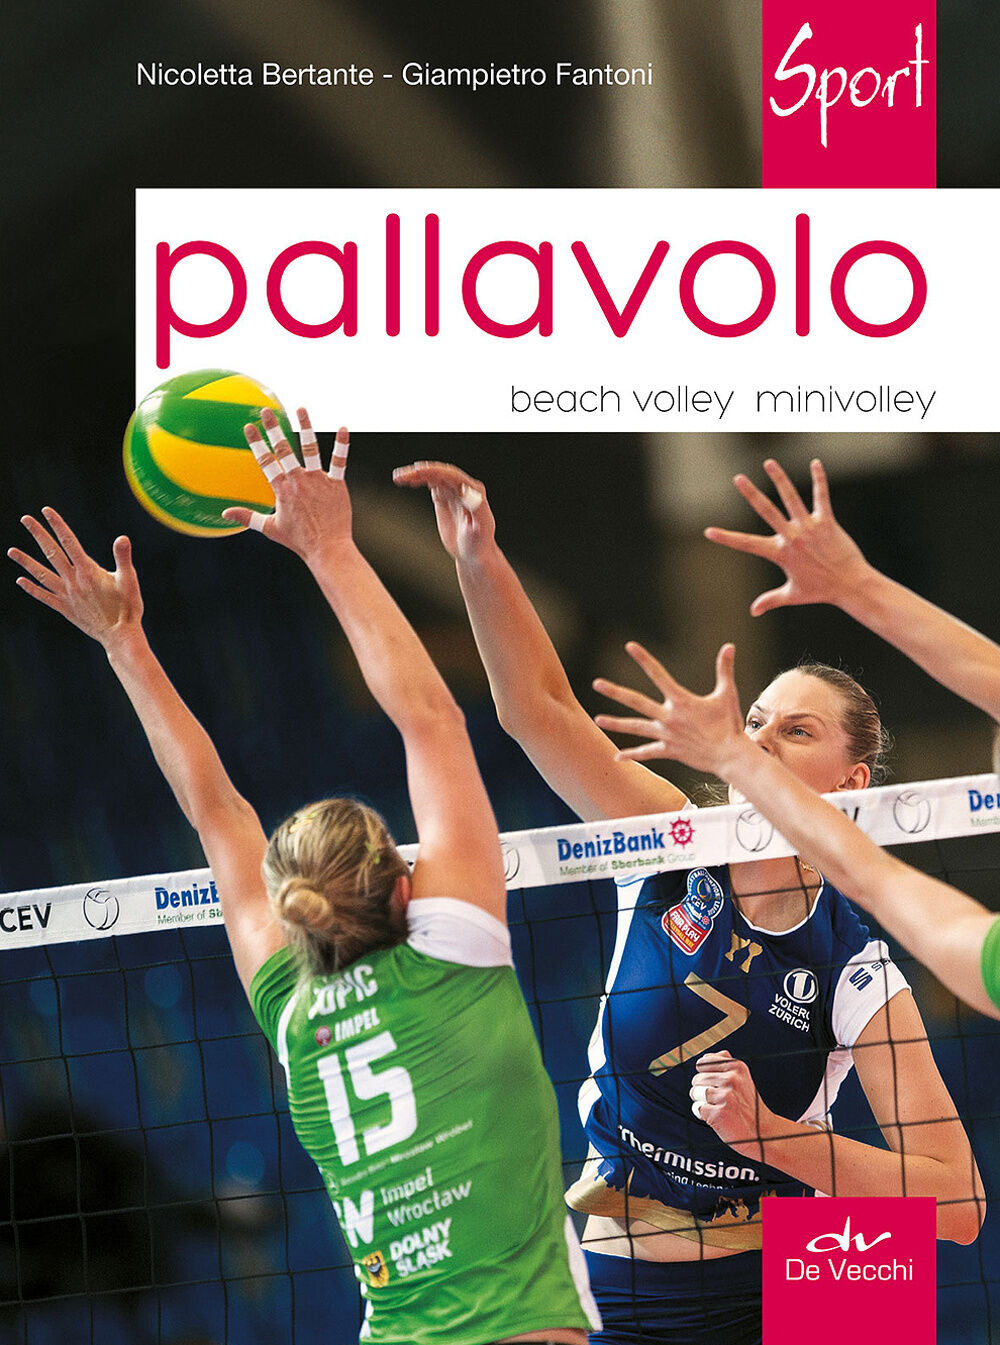 Pallavolo. Beach volley, minivolley